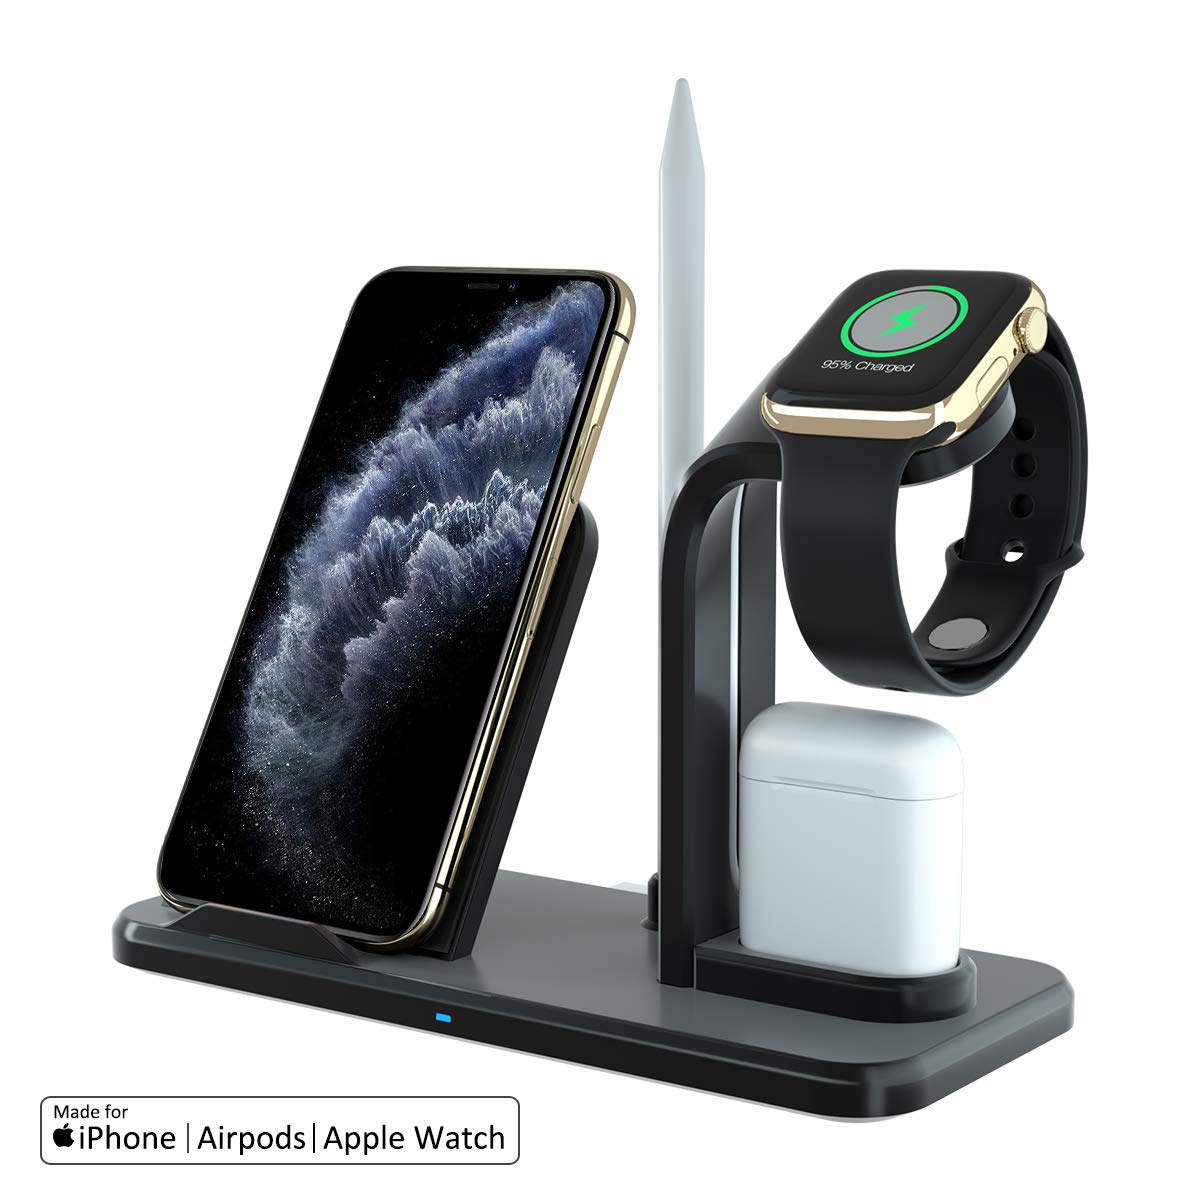 GOSETH Wireless Charger 3 in 1 Charging Holder Compatible with Apple Watch Series 5 4 3 2 1&AirPods, 10W Qi Wireless Charging for iPhone 11 Pro Max/11 ...